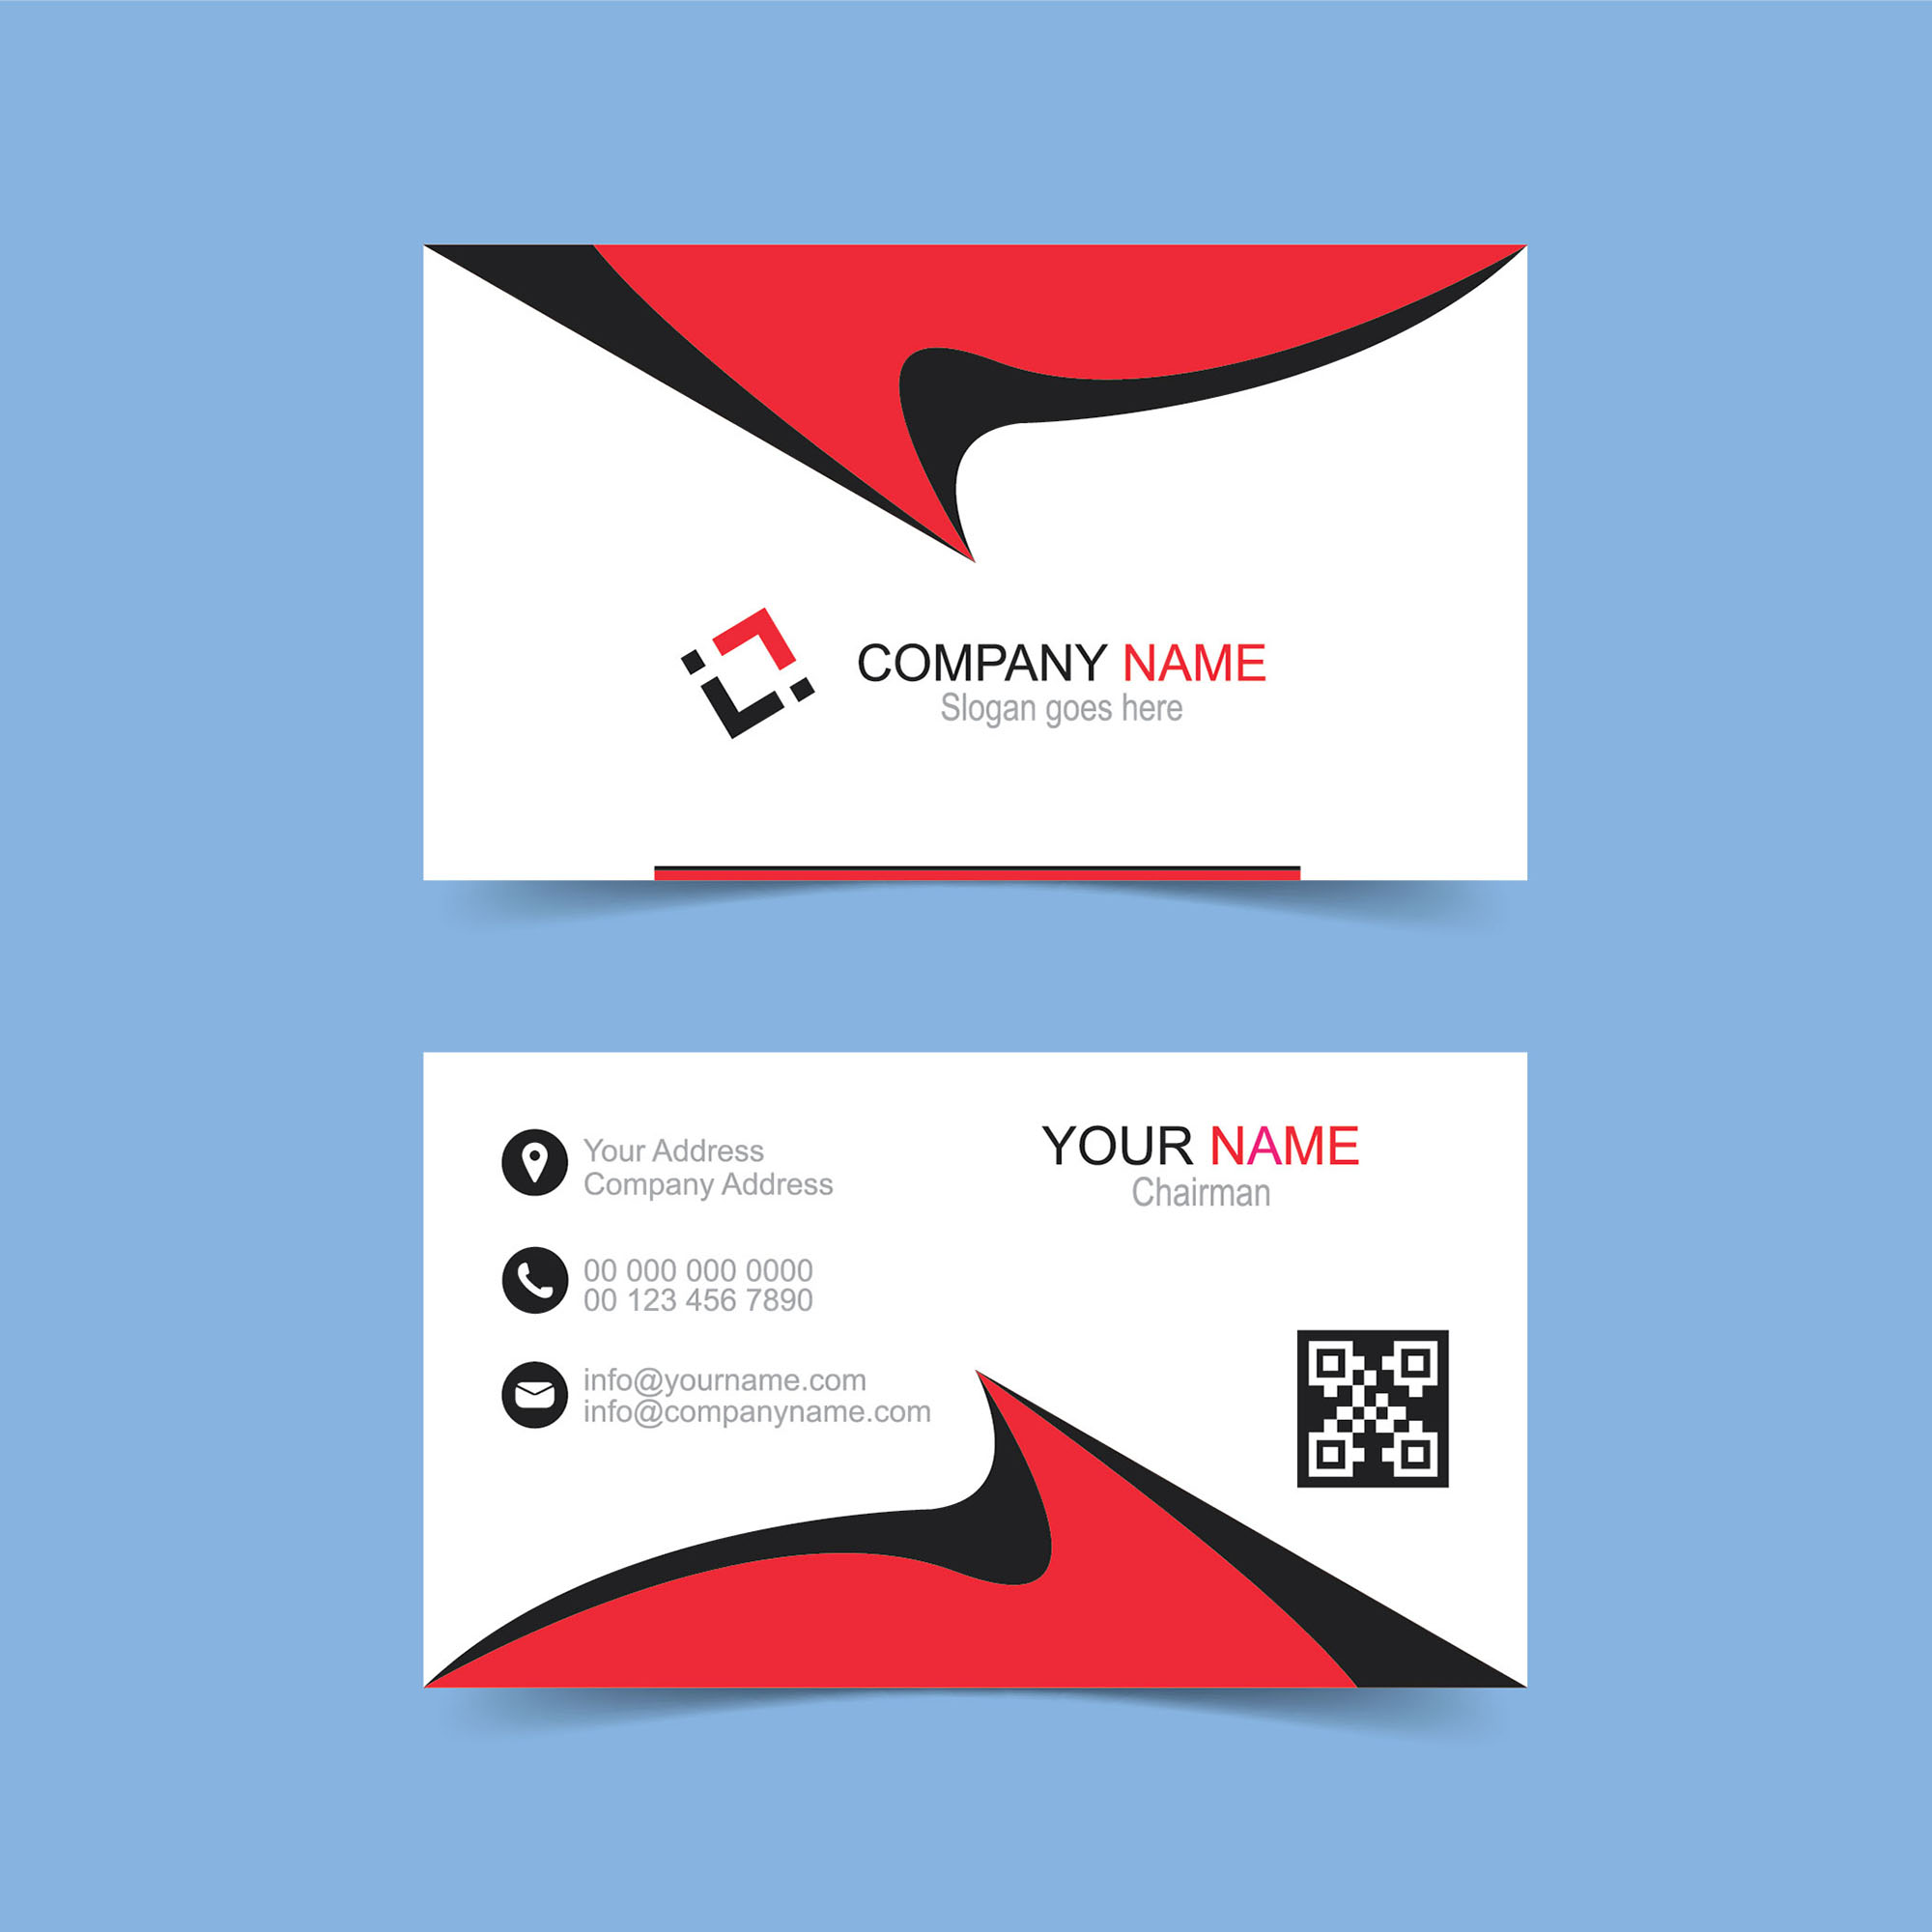 Double sided business card free download wisxi business card business cards business card design business card template design templates cheaphphosting Choice Image